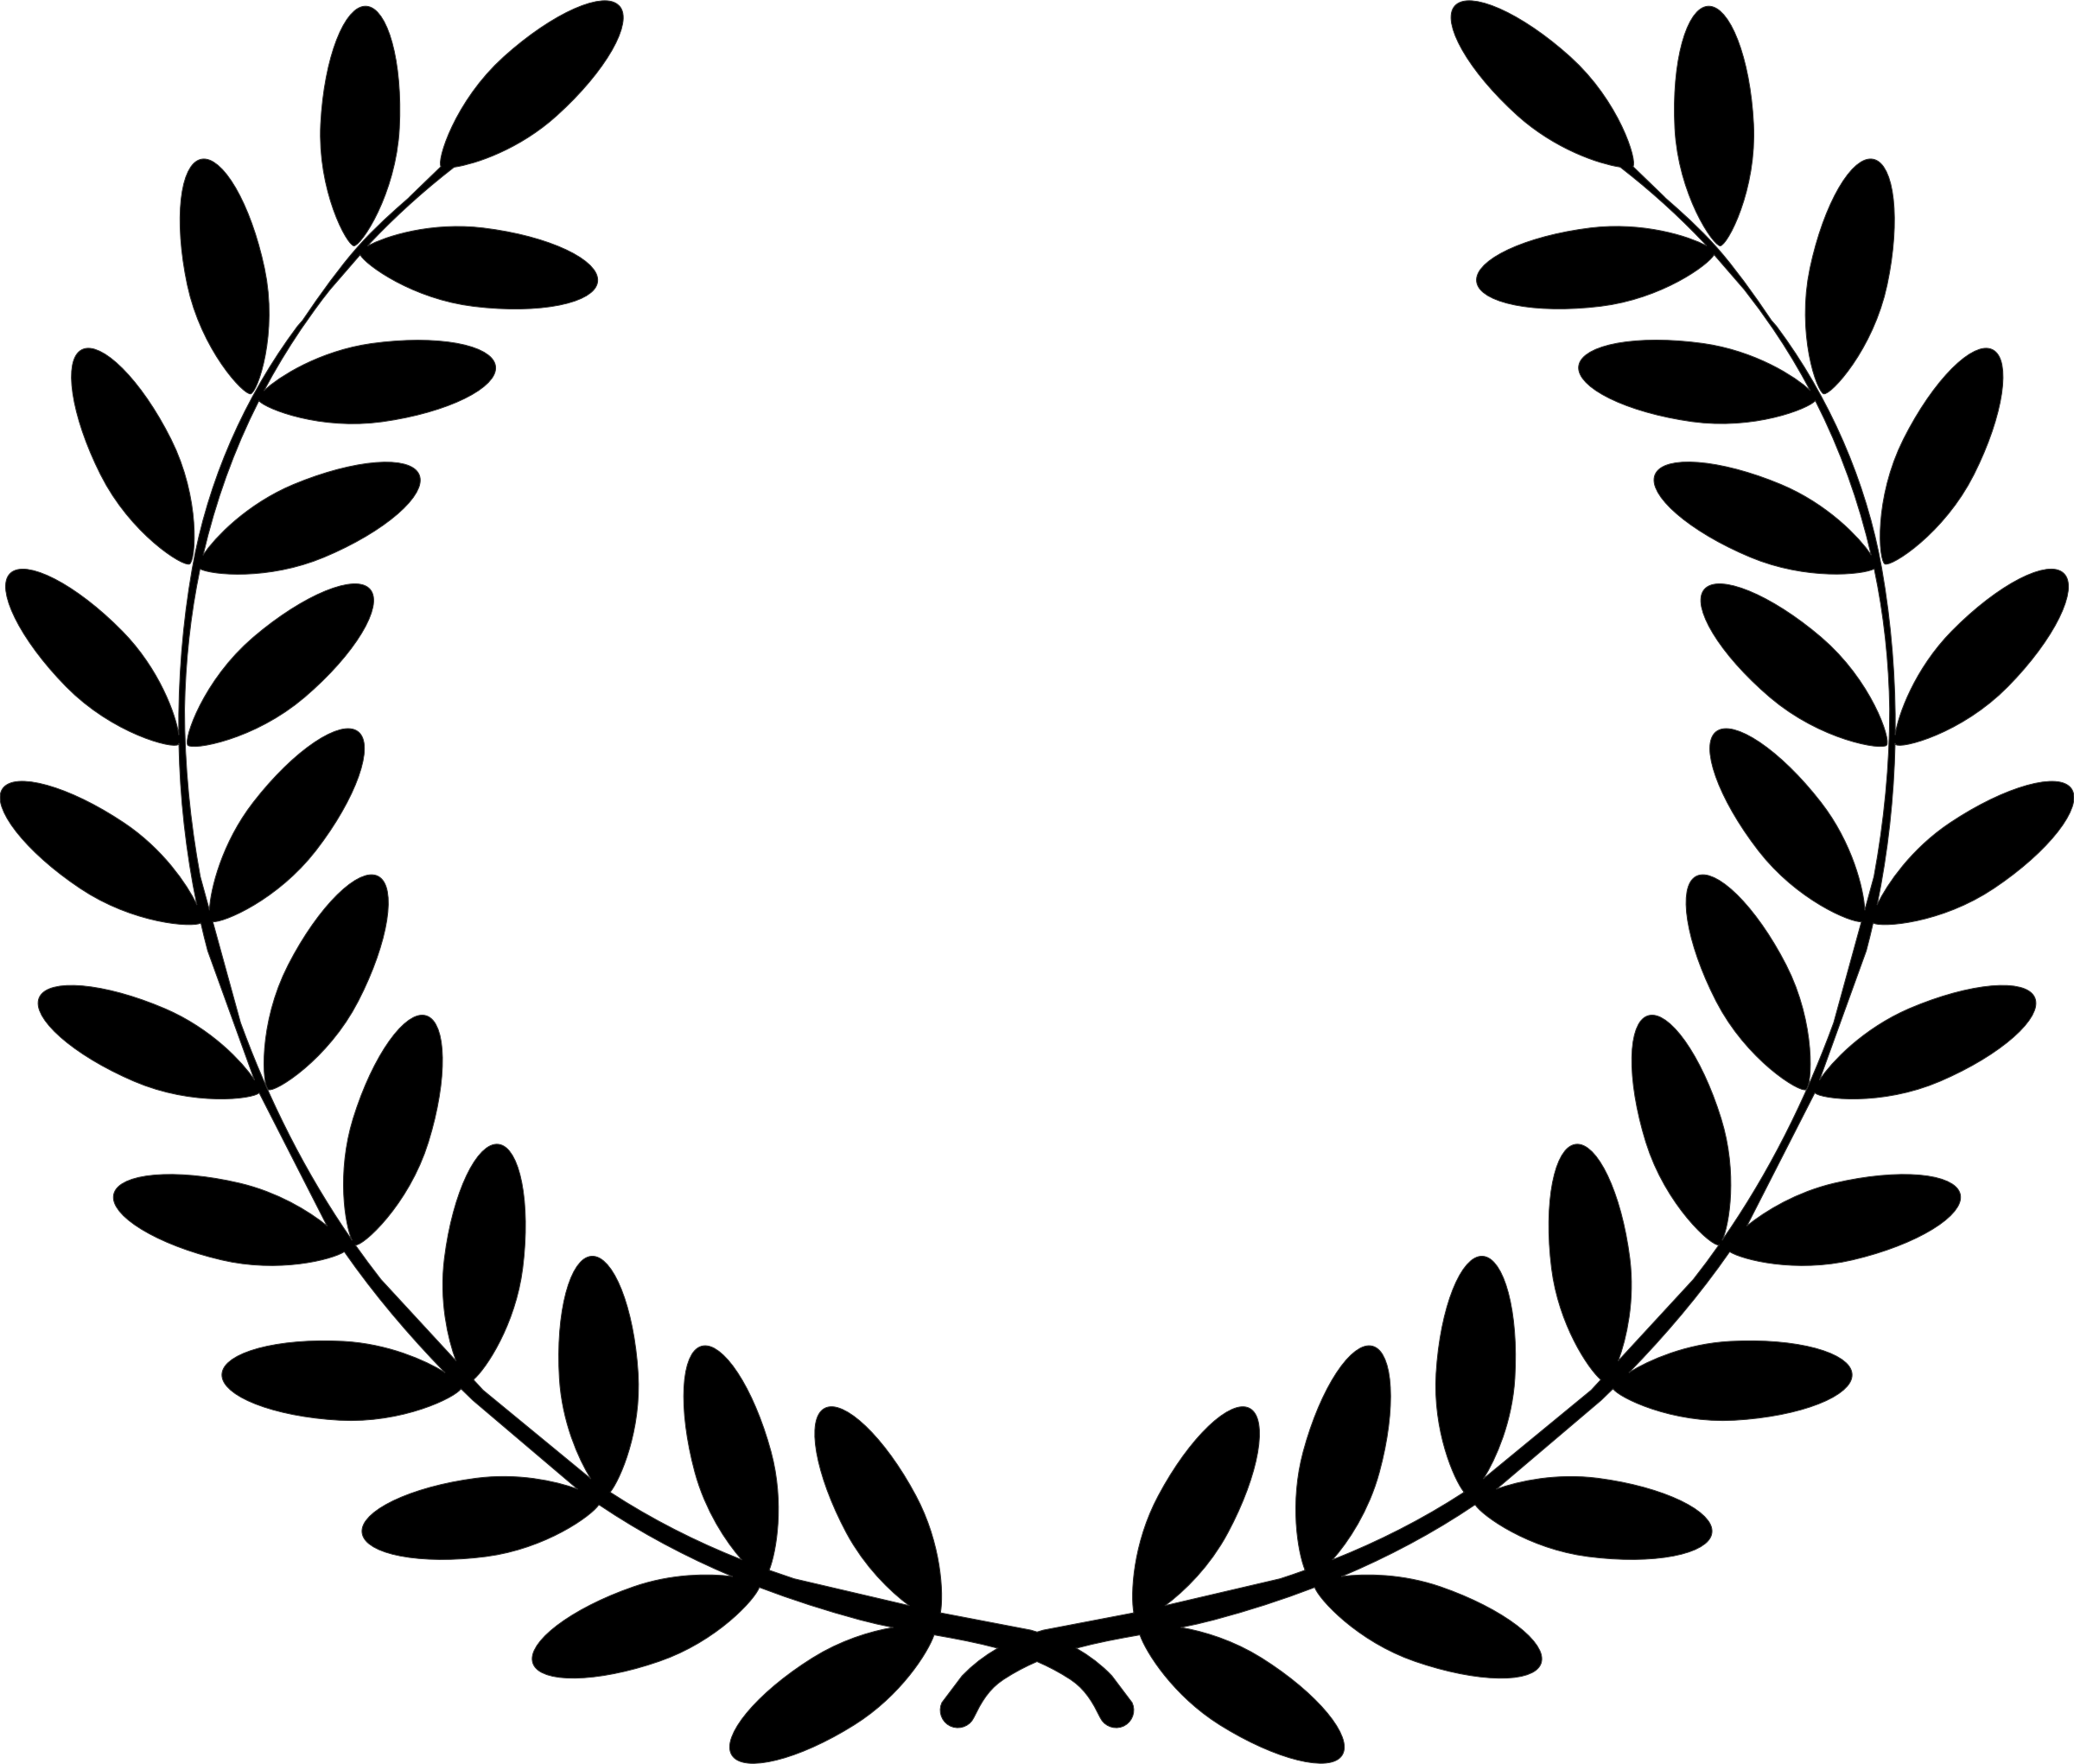 Free Greek Wreath Png, Download Free Clip Art, Free Clip Art.